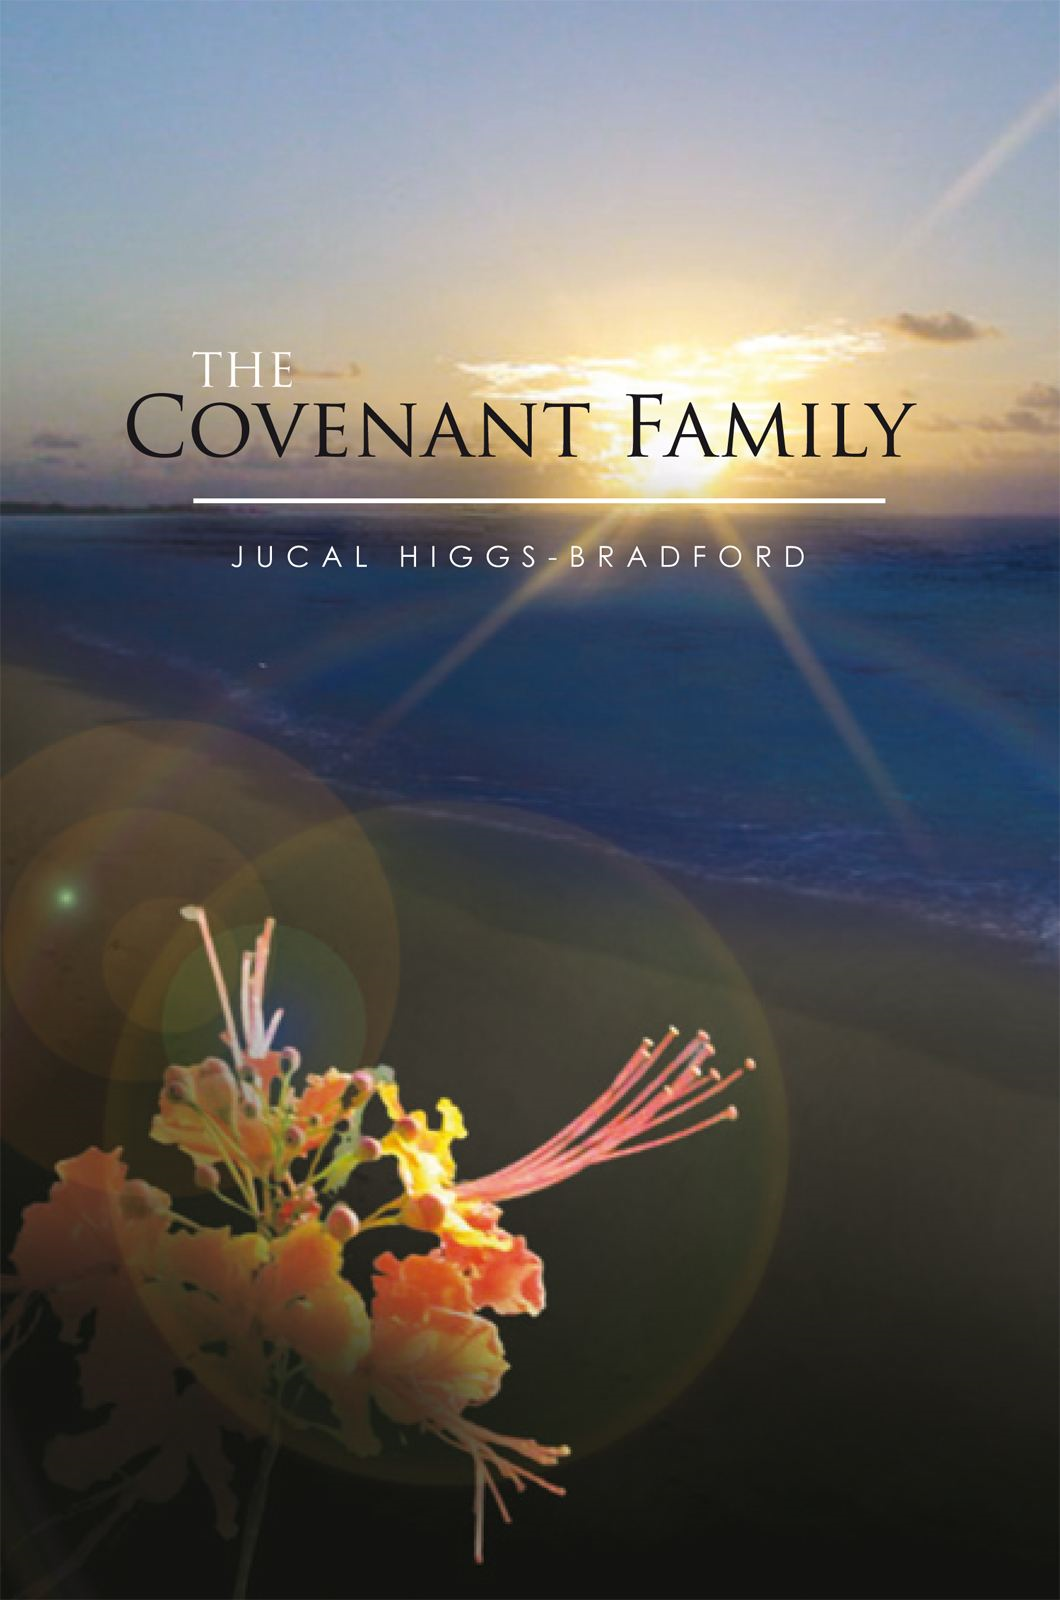 THE COVENANT FAMILY